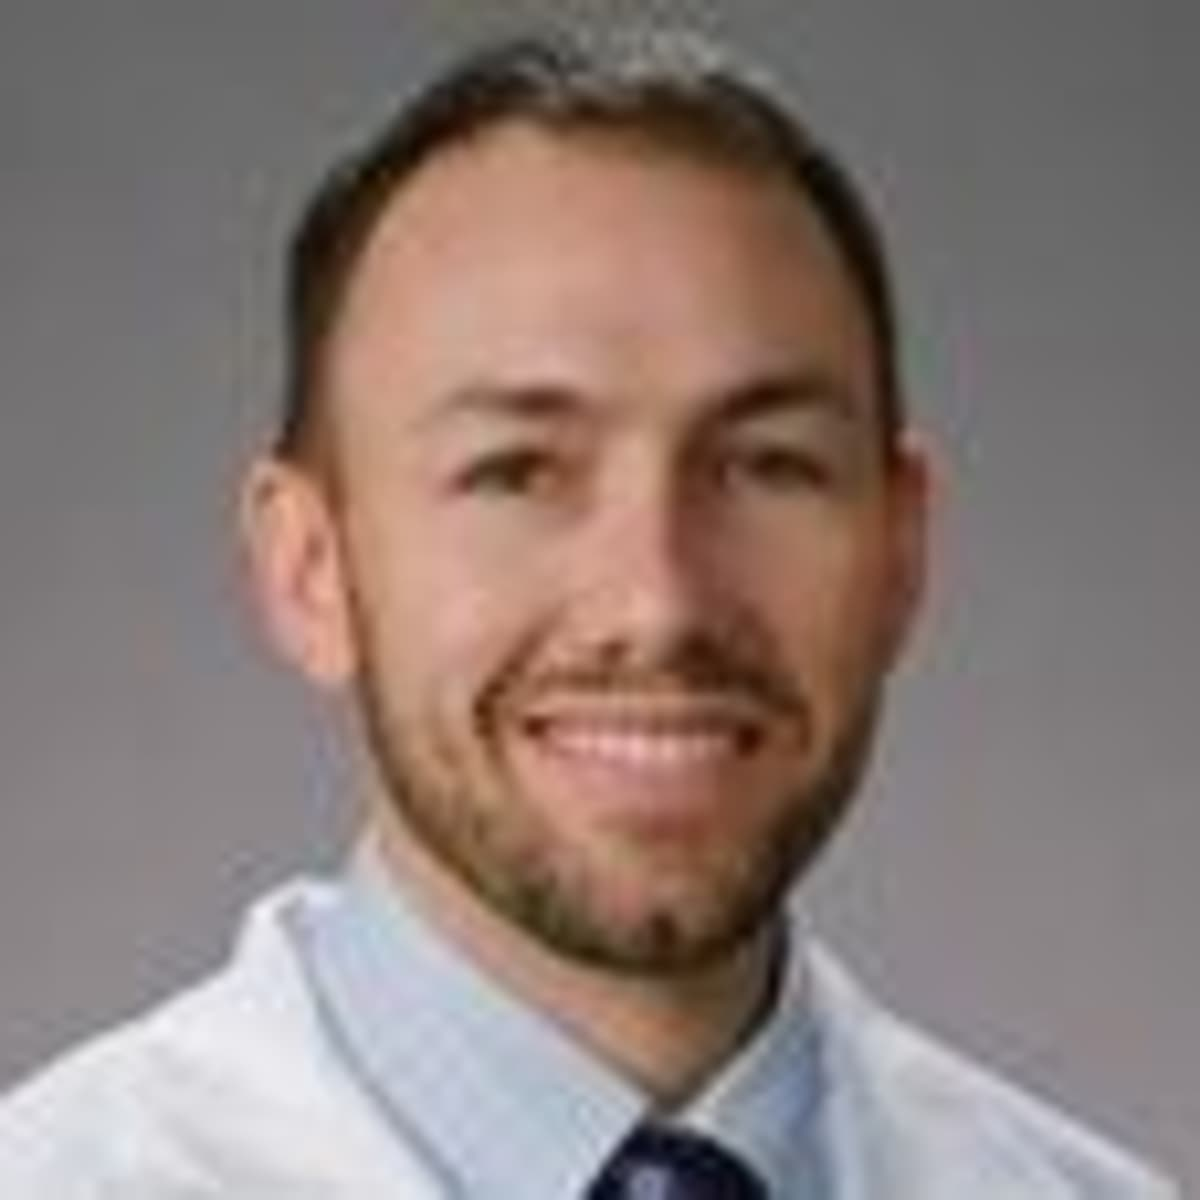 dr james folz md panorama city ca obstetrician gynecologist